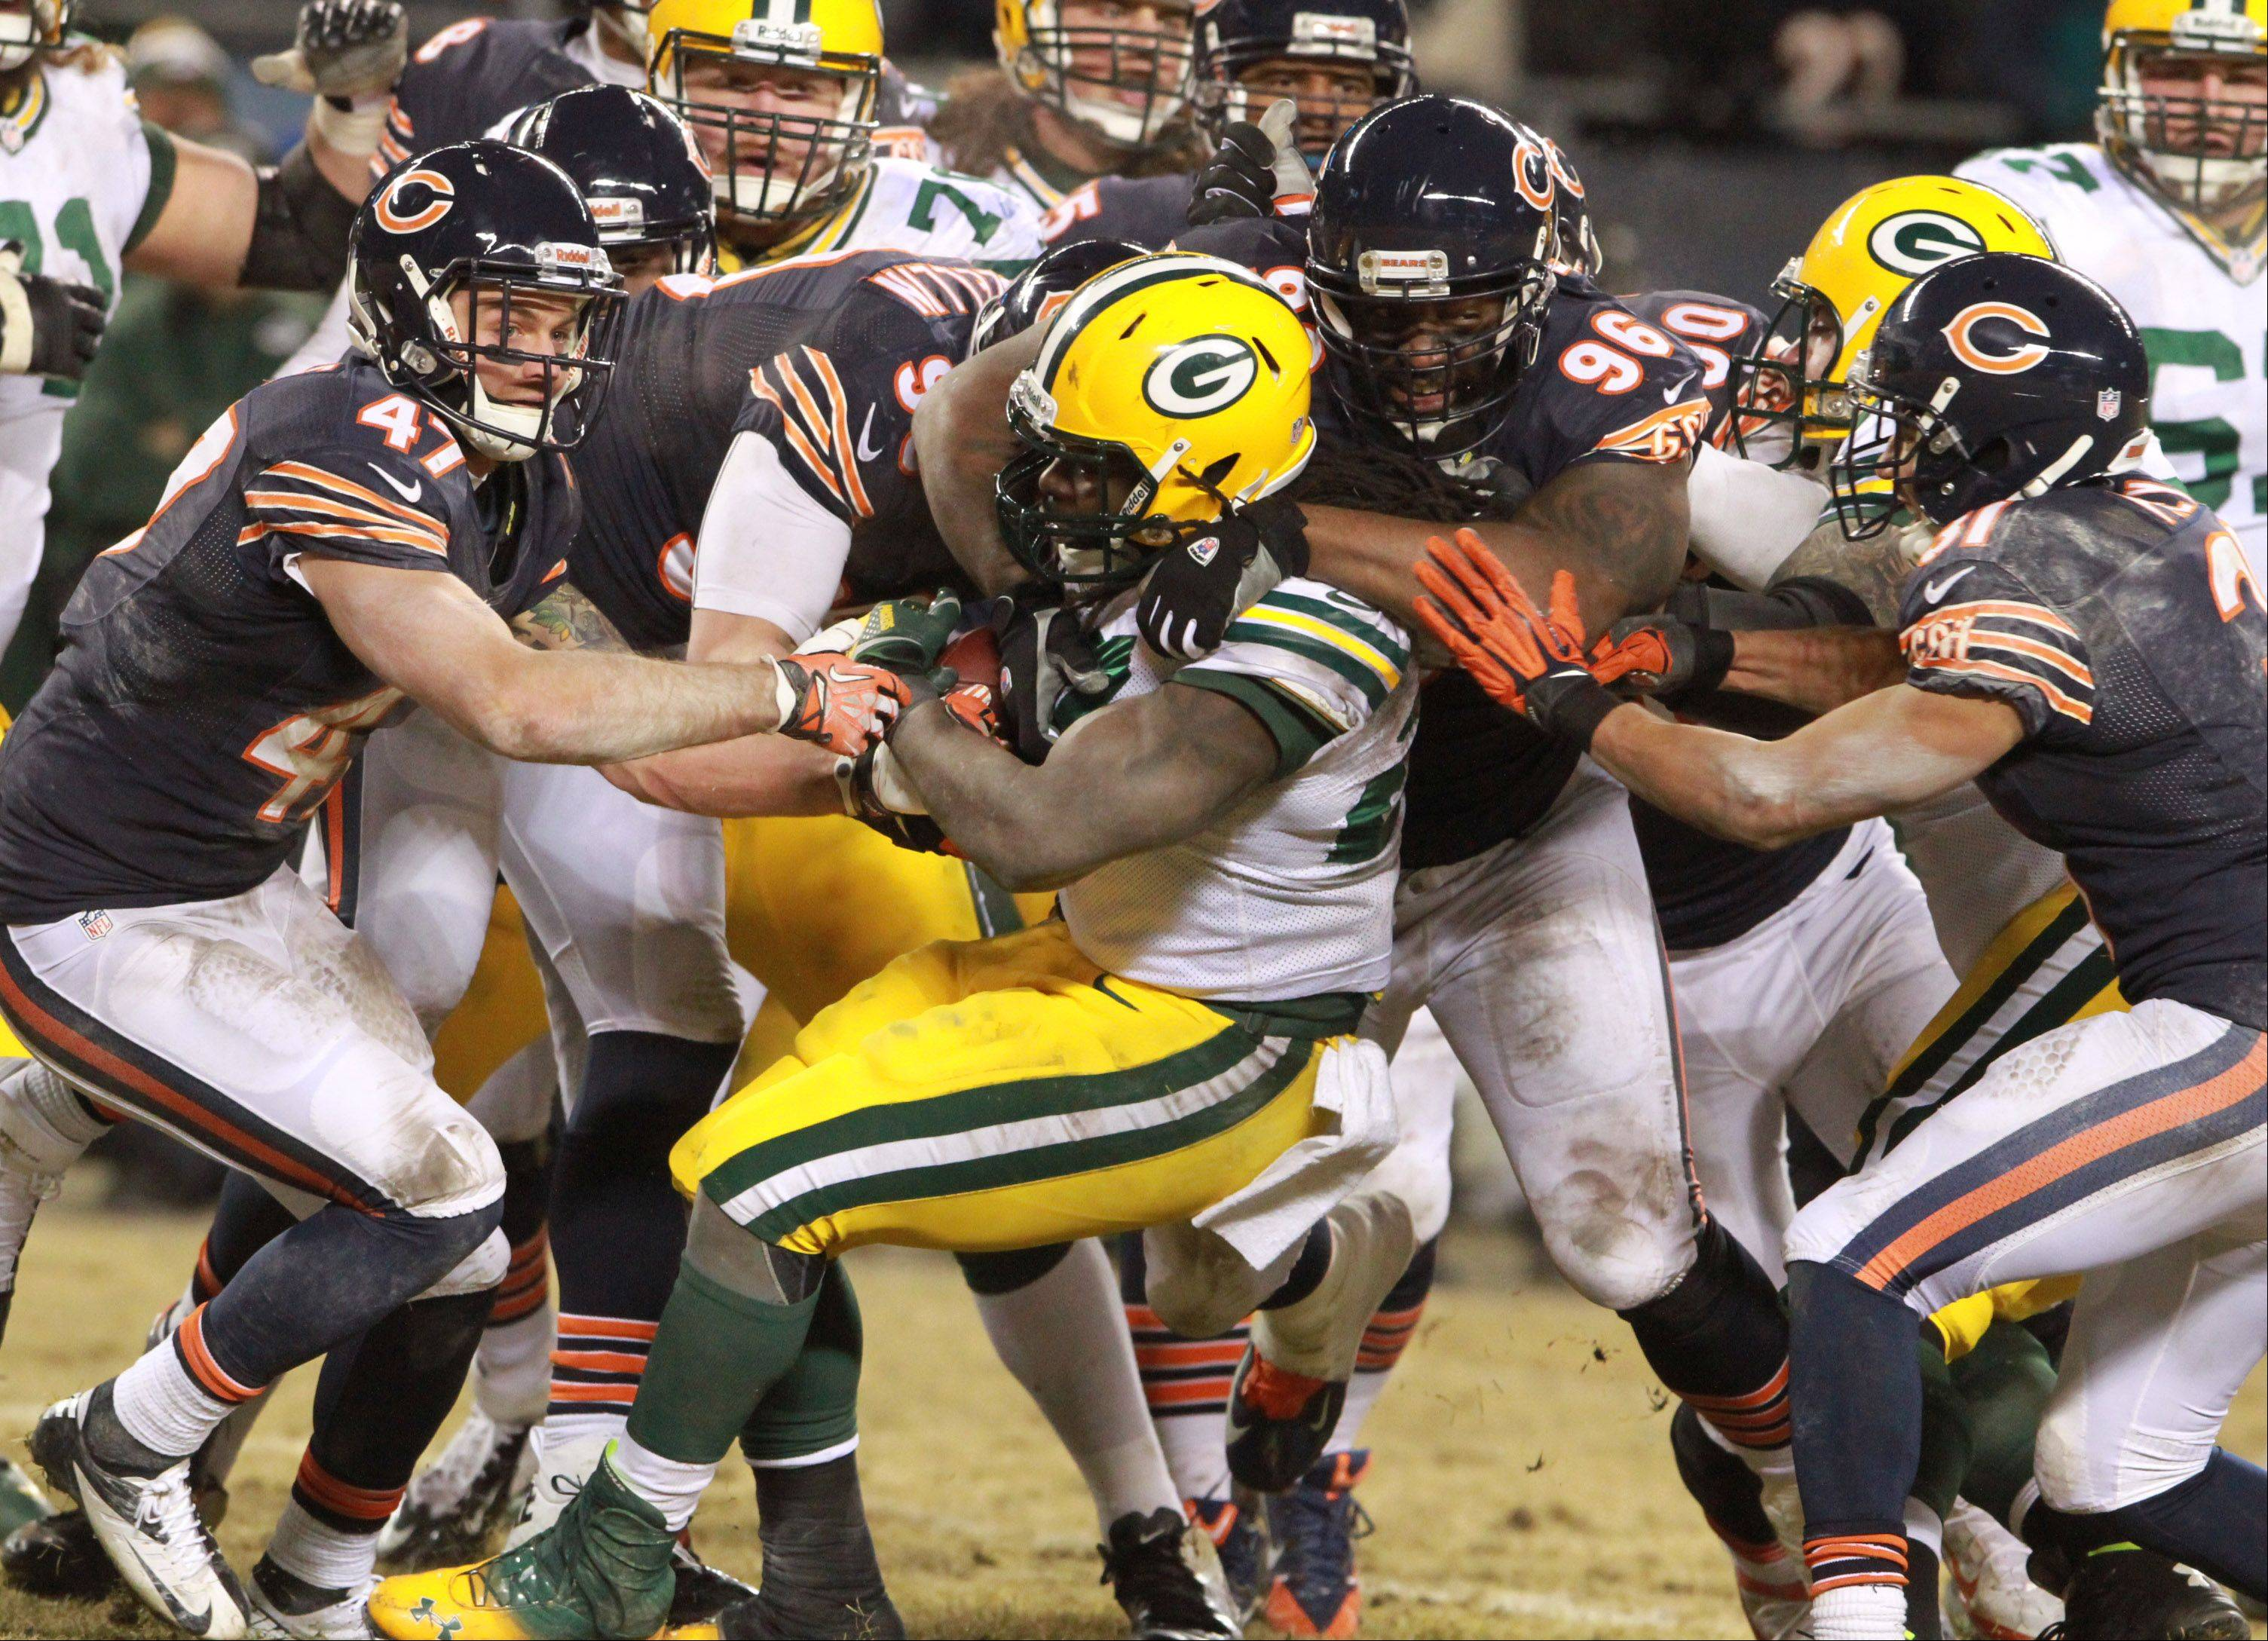 Green Bay Packers running back Eddie Lacy is dragged down by a host of Bears players including nose tackle Jeremiah Ratliff (96) on Sunday at Soldier Field in Chicago.